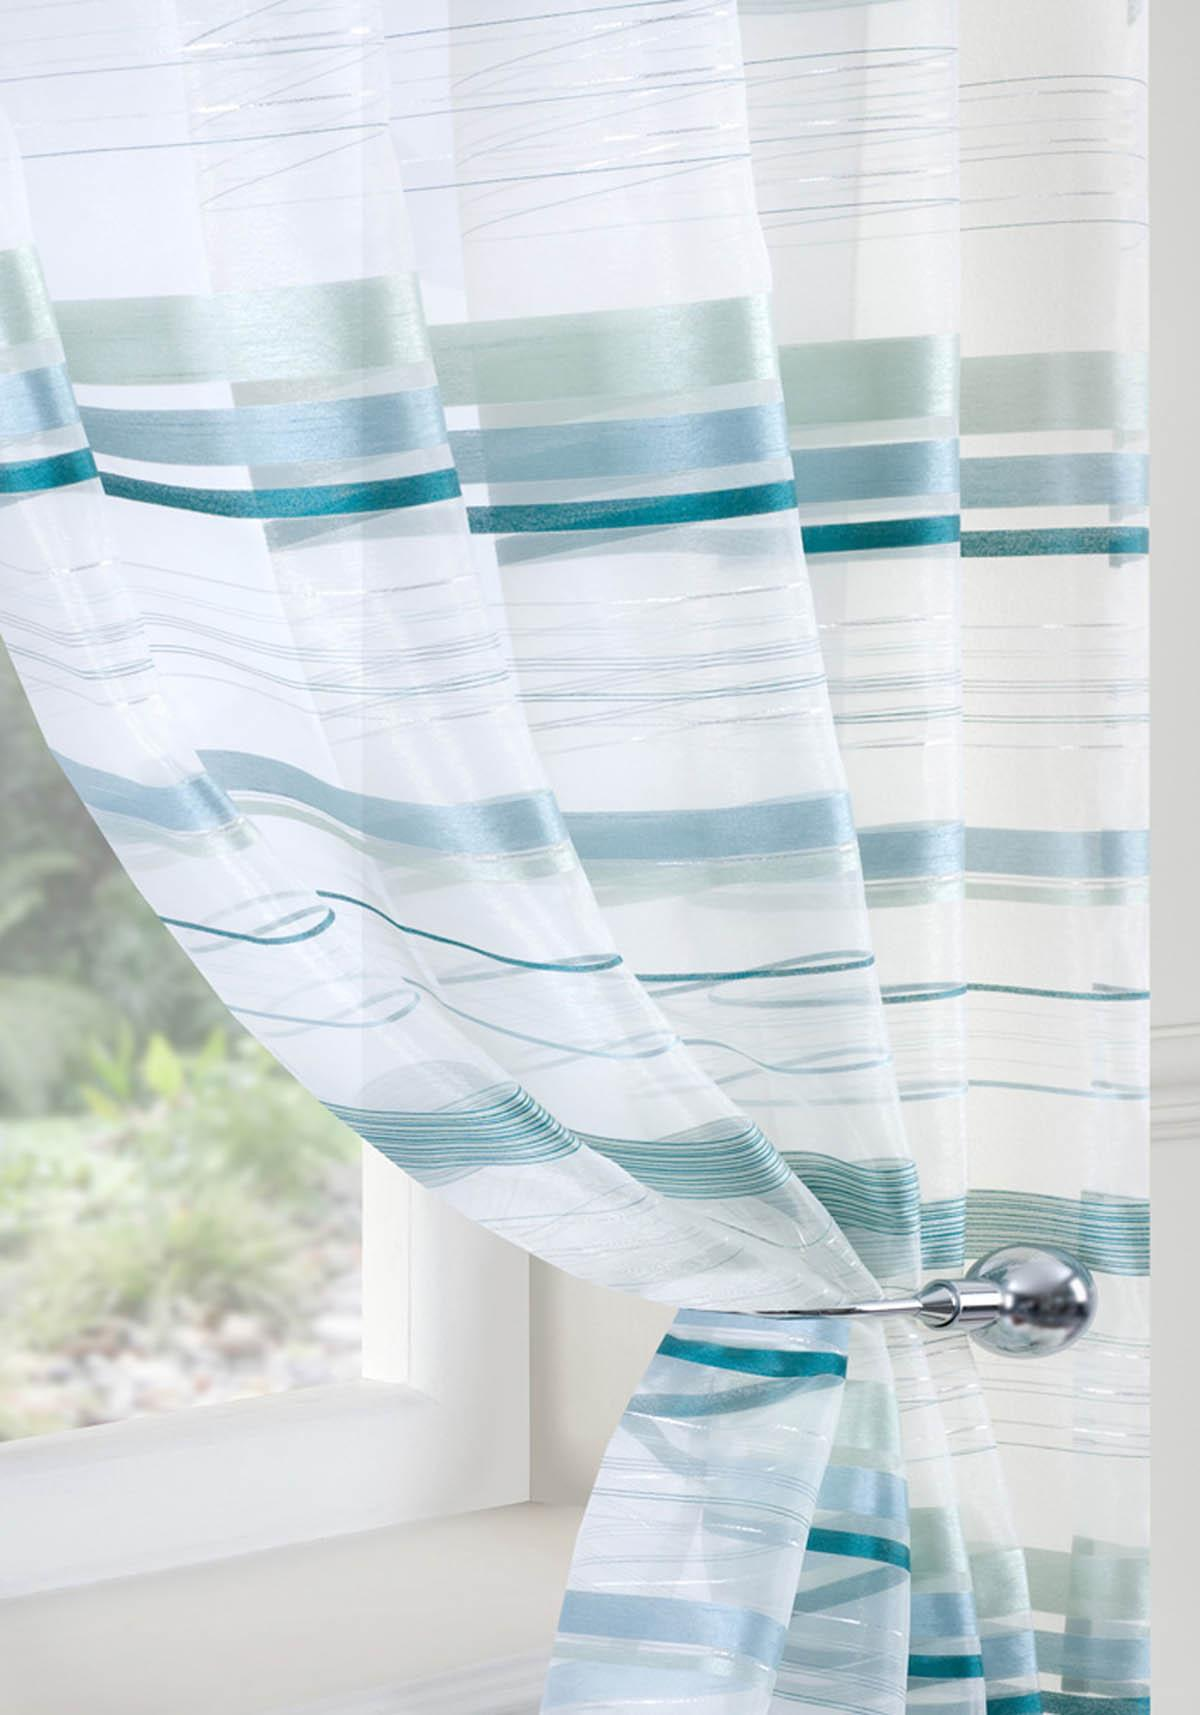 Voile curtain panel brown cheap green curtain voile uk delivery - Metropole Voile Curtain Panel Thumbnail Share Colour Choices Matching Product Beigefrom 13 99 Tealfrom 13 99